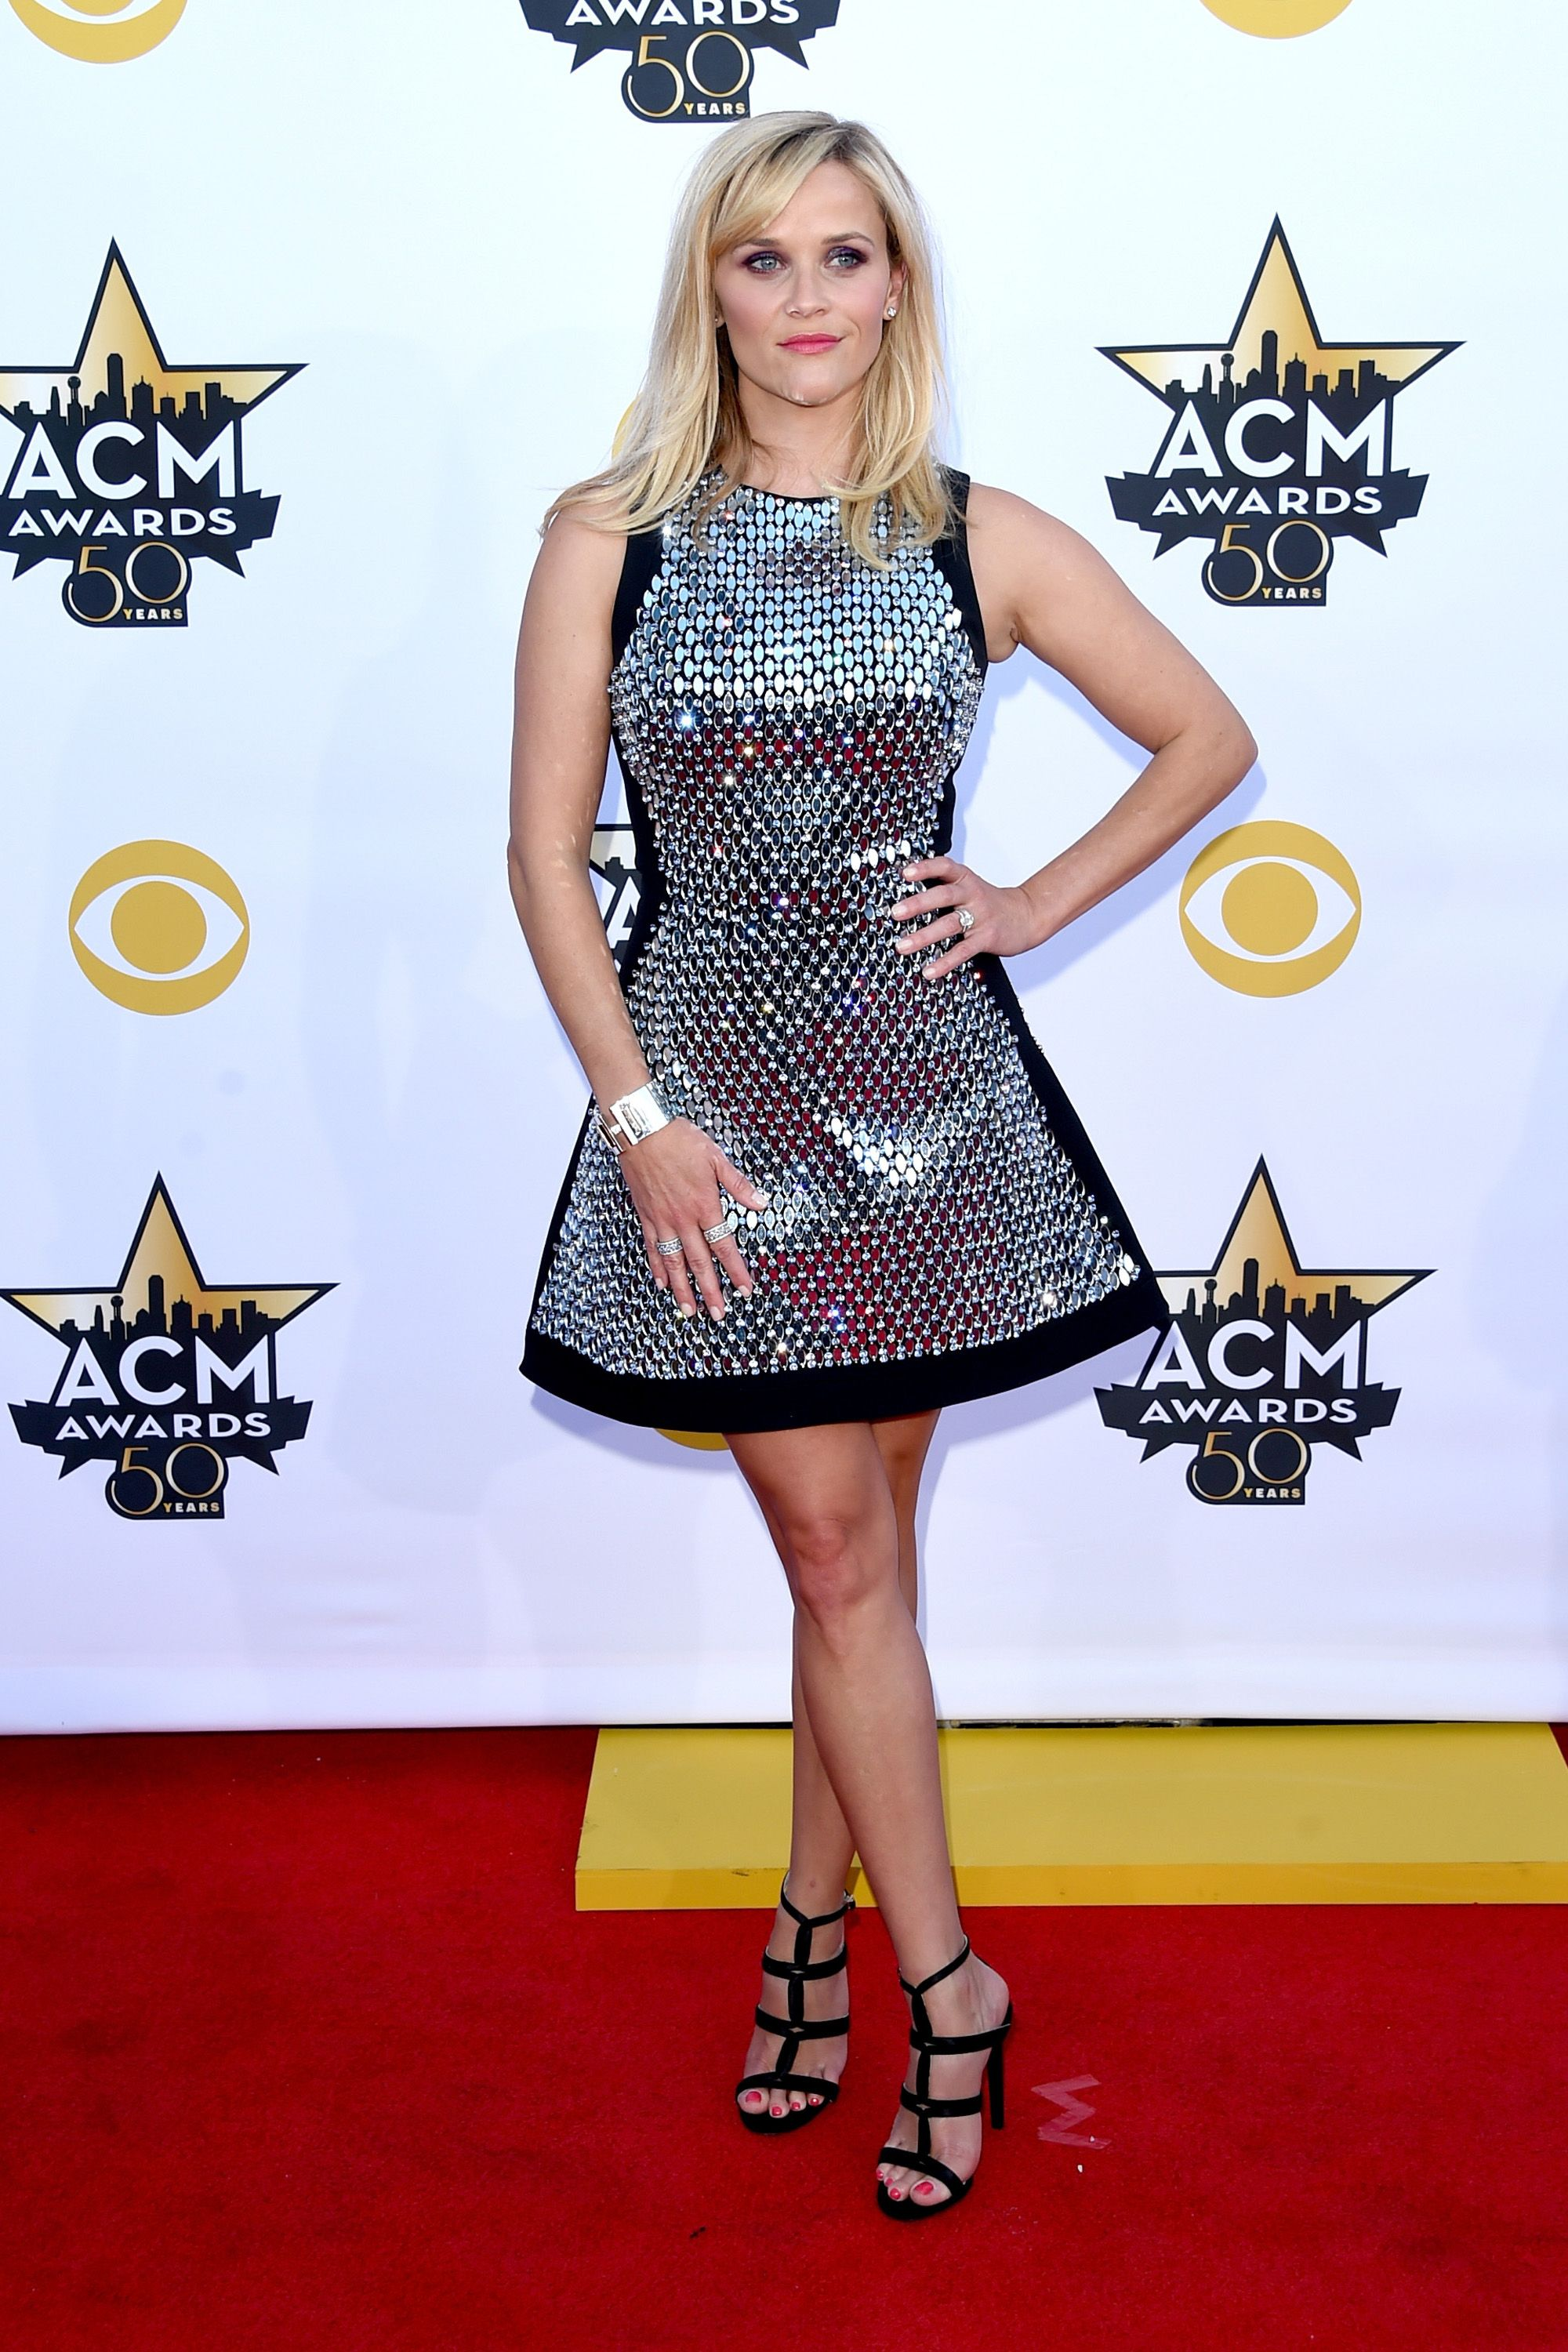 ARLINGTON, TX - APRIL 19:  Actress Reese Witherspoon attends the 50th Academy Of Country Music Awards at AT&T Stadium on April 19, 2015 in Arlington, Texas.  (Photo by Jason Merritt/Getty Images)